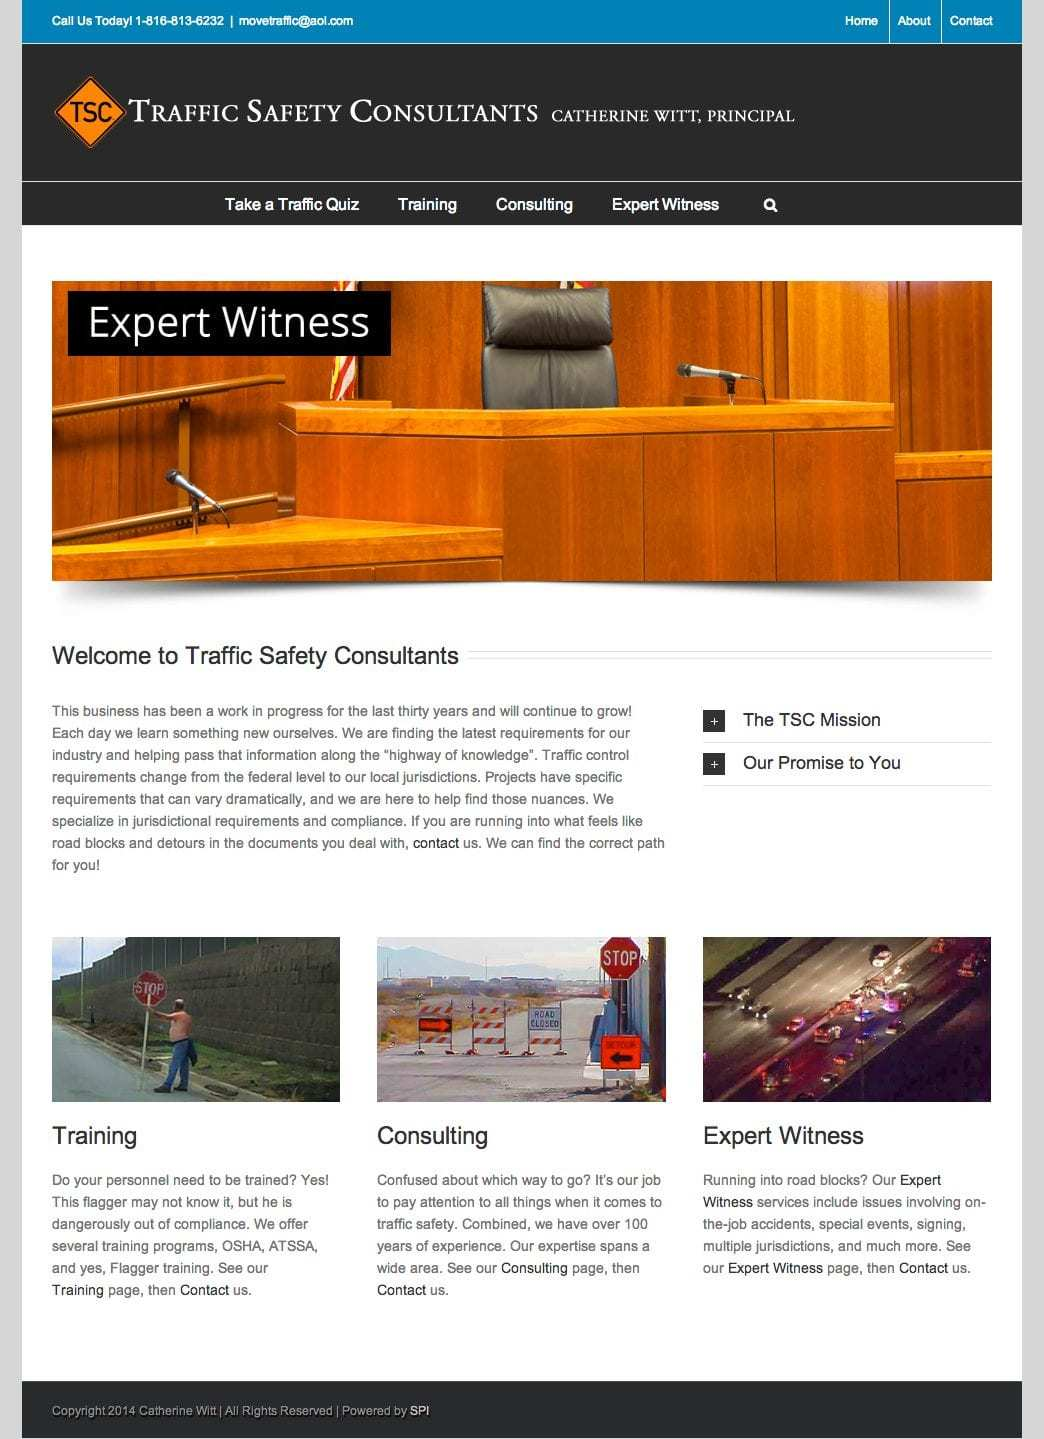 Traffic Safety Consultants homepage